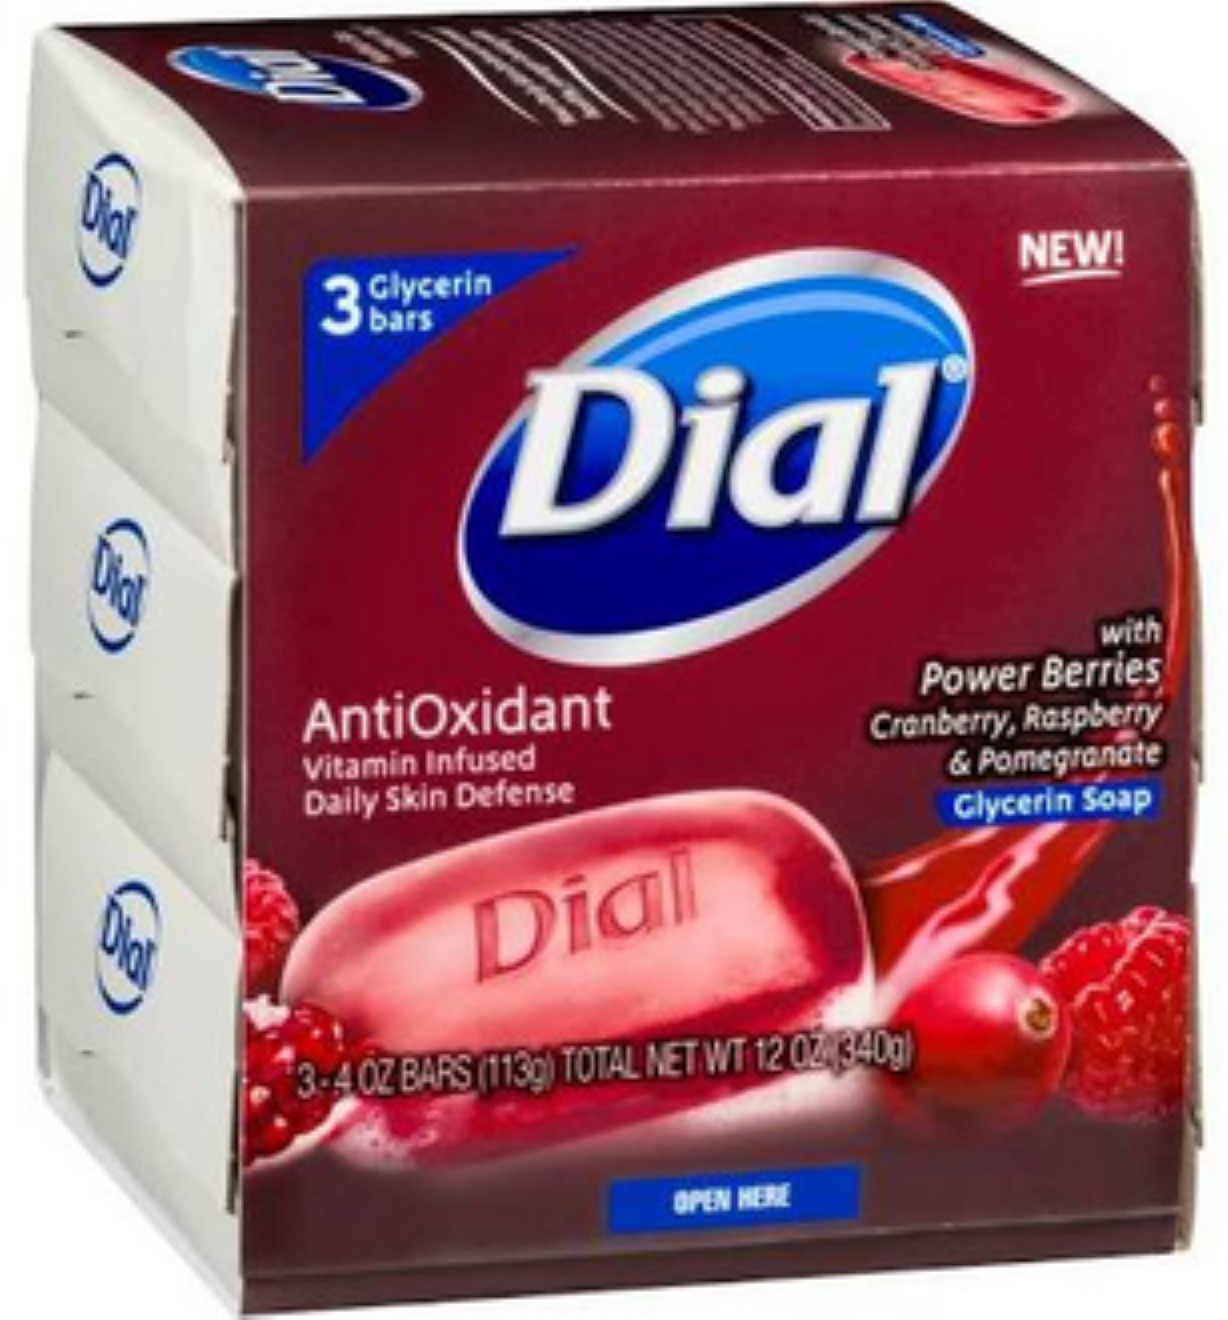 Dial Glycerin Bar Soap with Power Berries, Cranberry, 4 oz bars, 3 ea (Pack of 2)